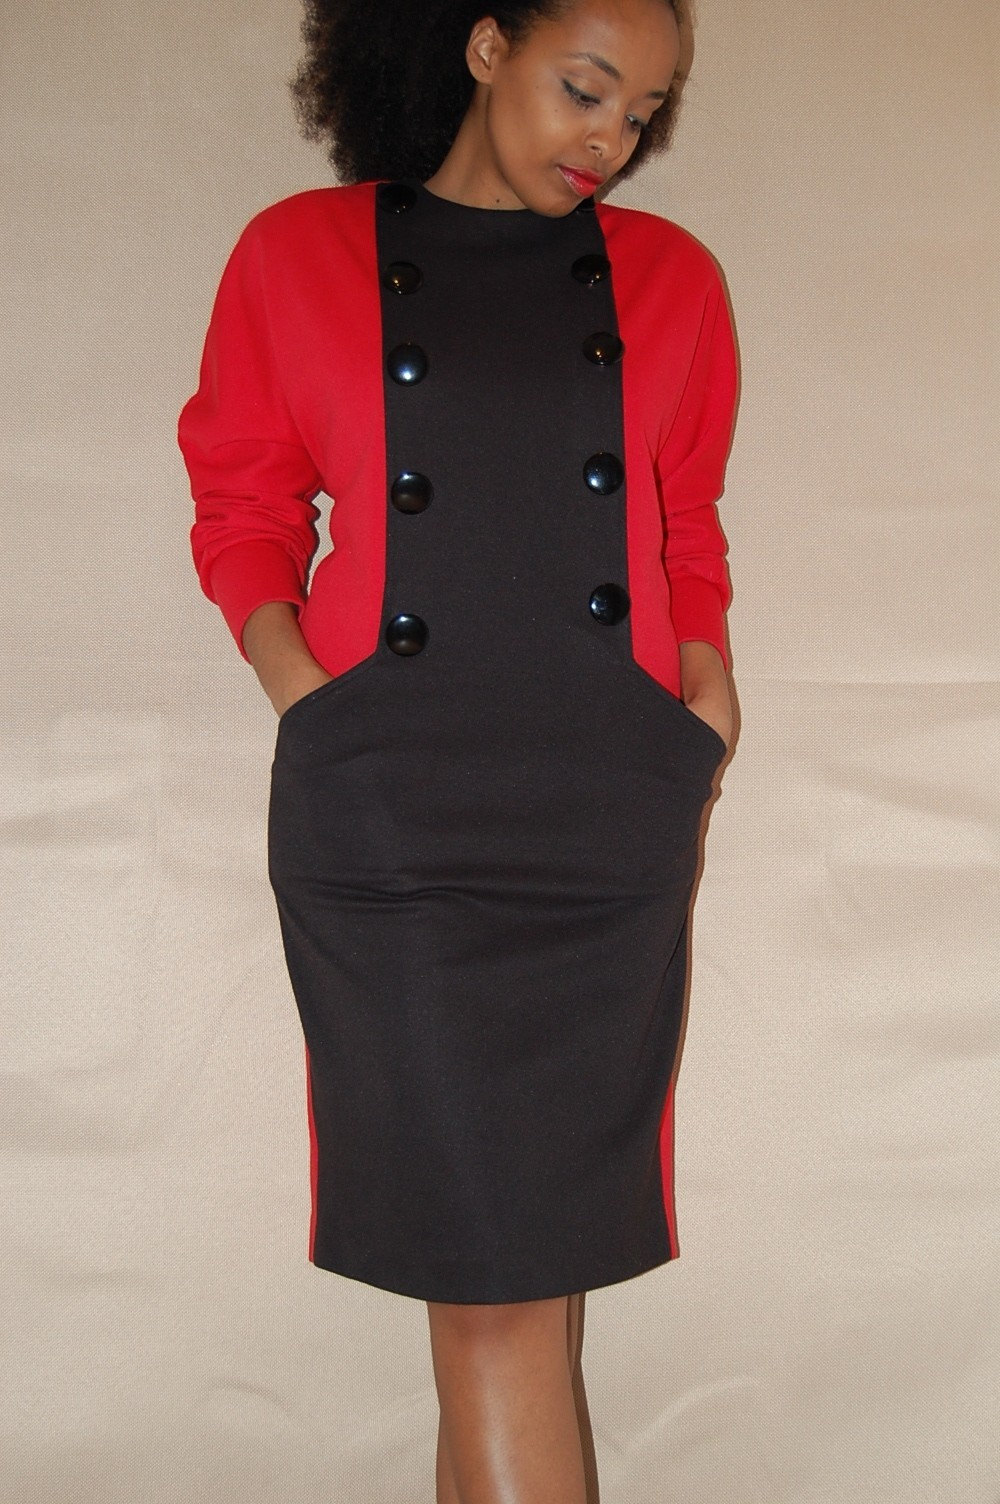 Vintage ----Button Me Up---- Red and Black Dress